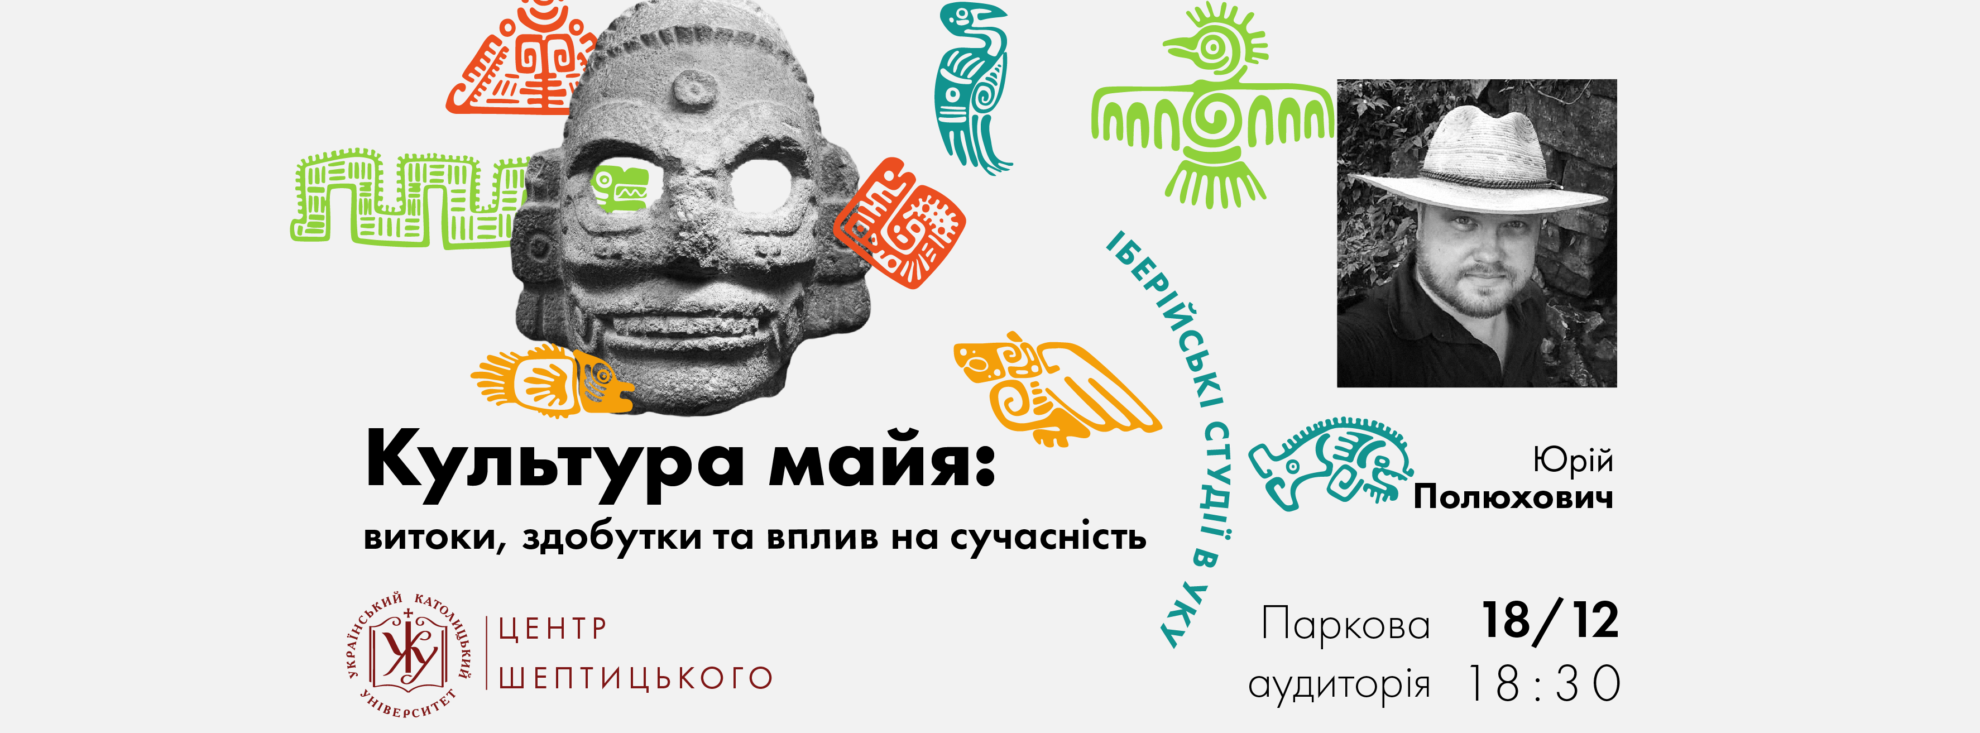 "Lecture by Yuriy Polyukhovych ""Maya Civilization and Culture"""